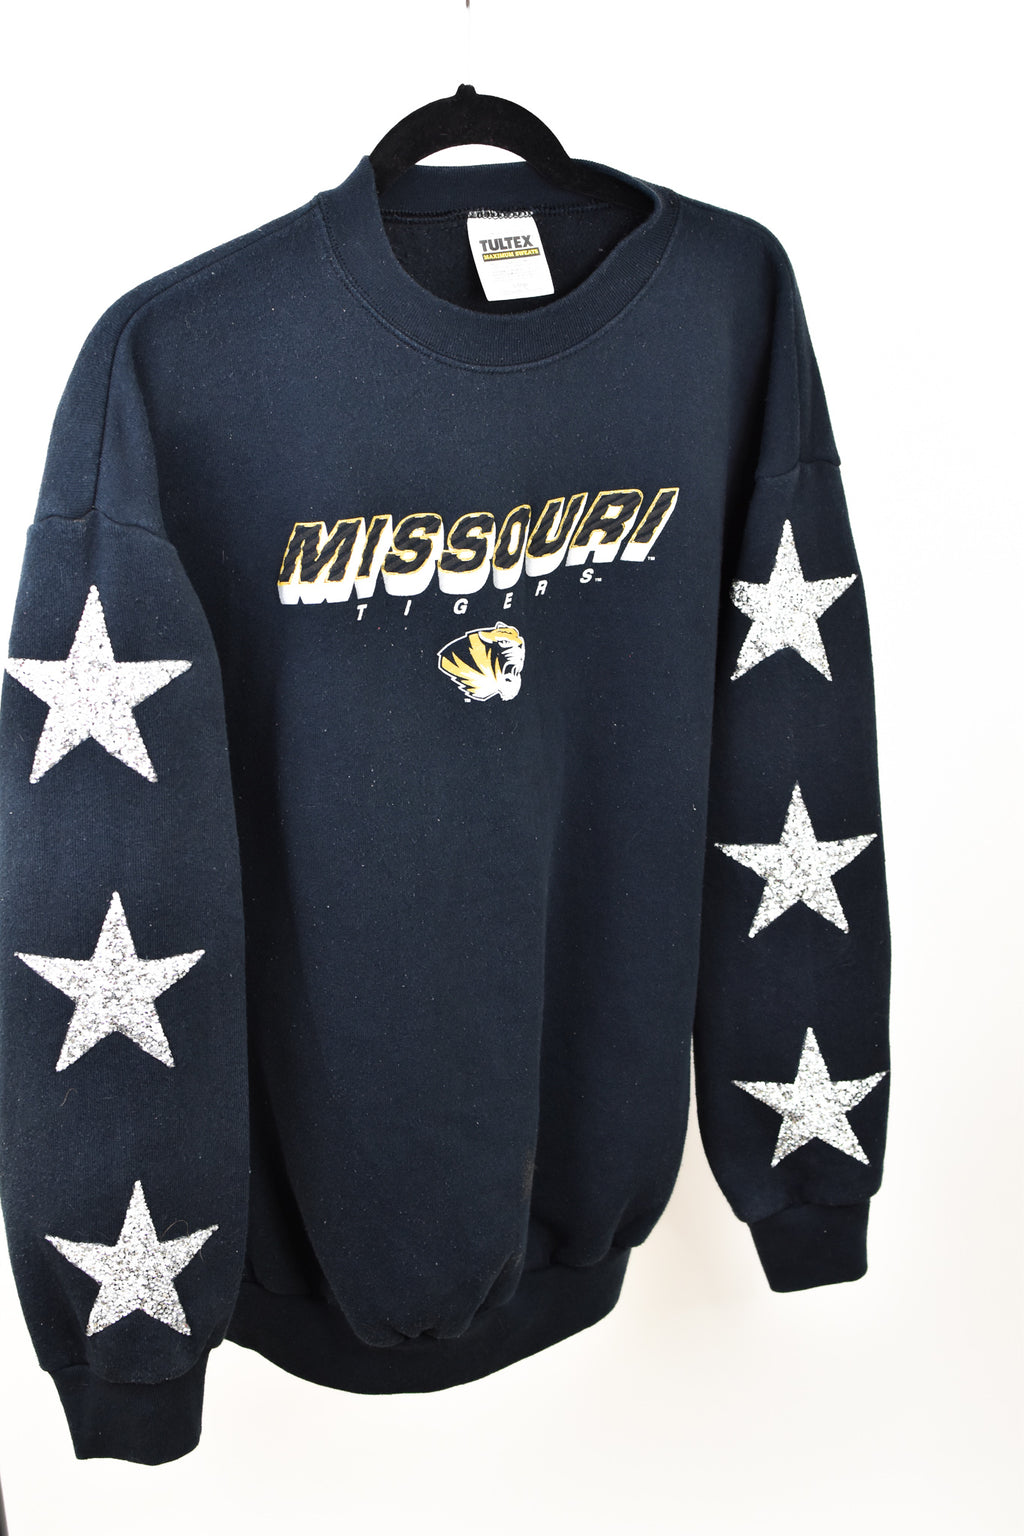 Upcycled VINTAGE University of Missouri Star Rhinestone Sweatshirt